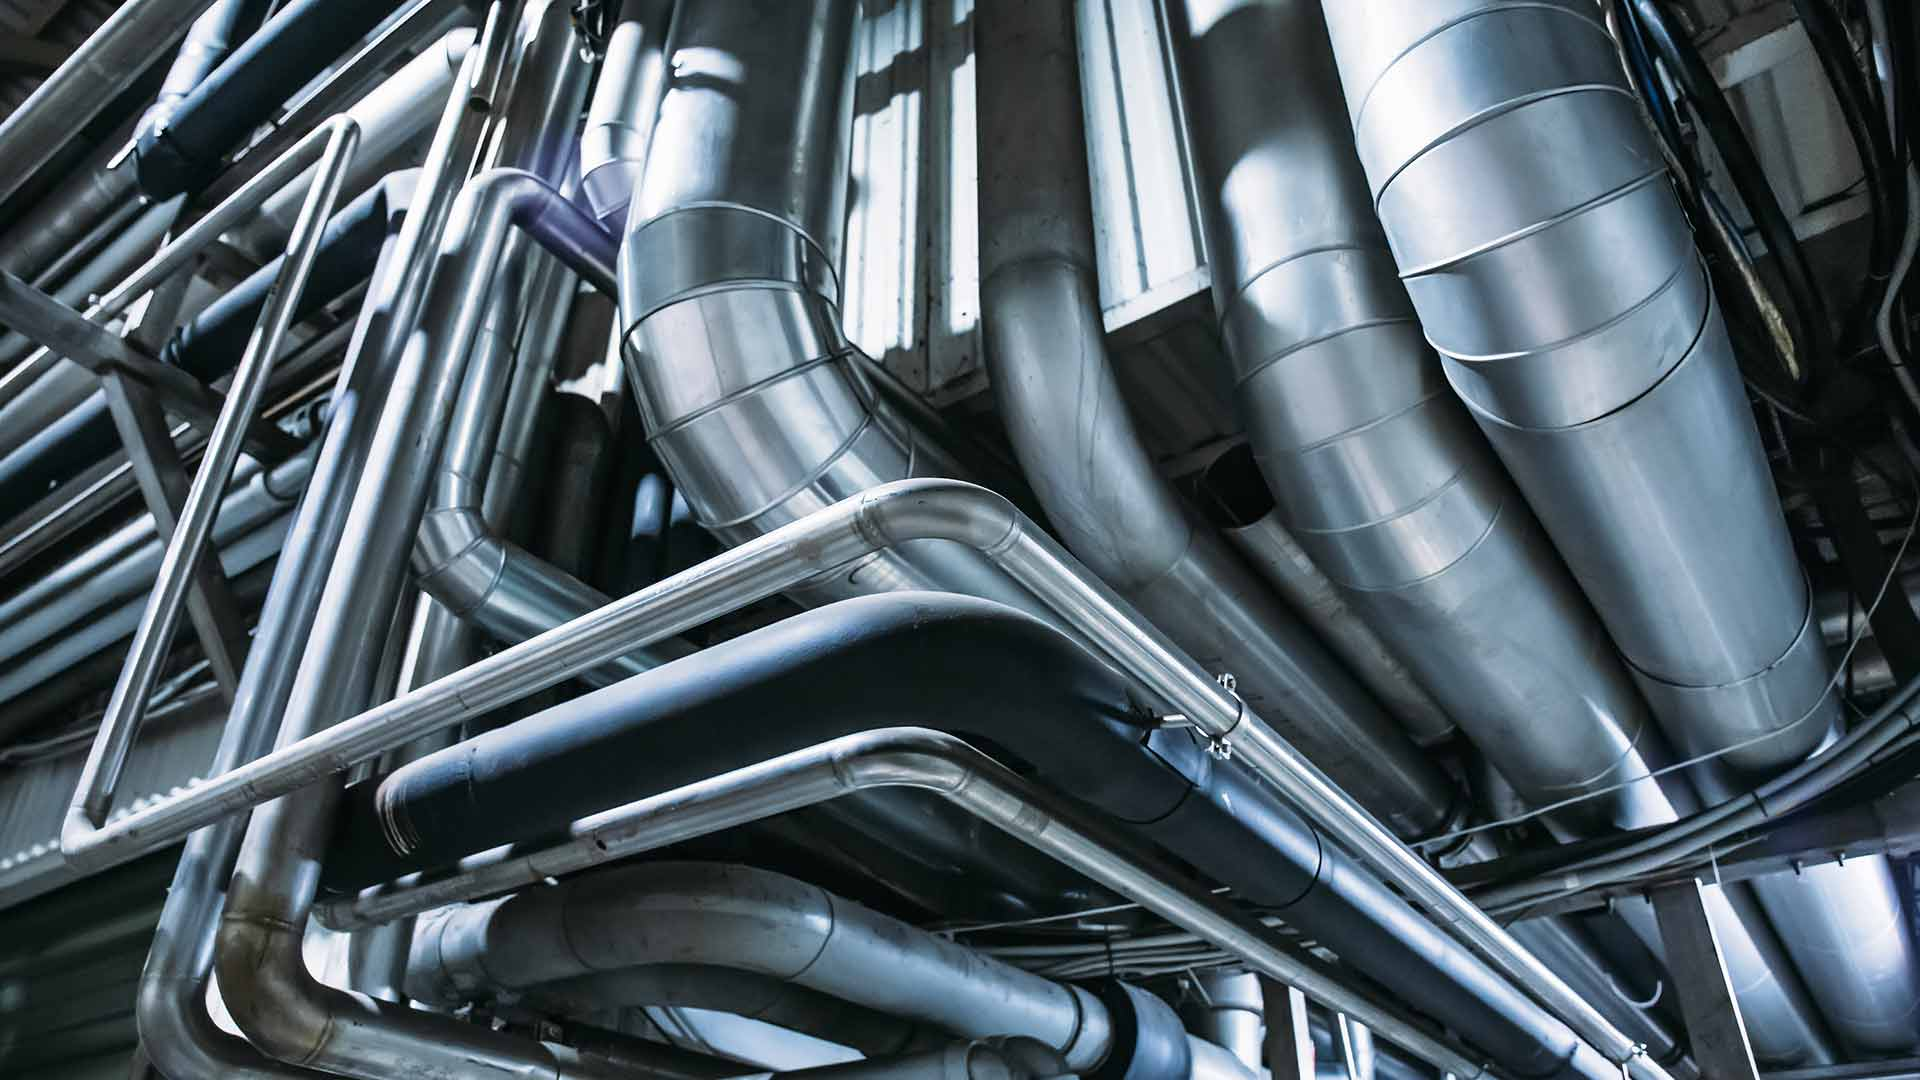 compressed air system Archives - Compressor Services